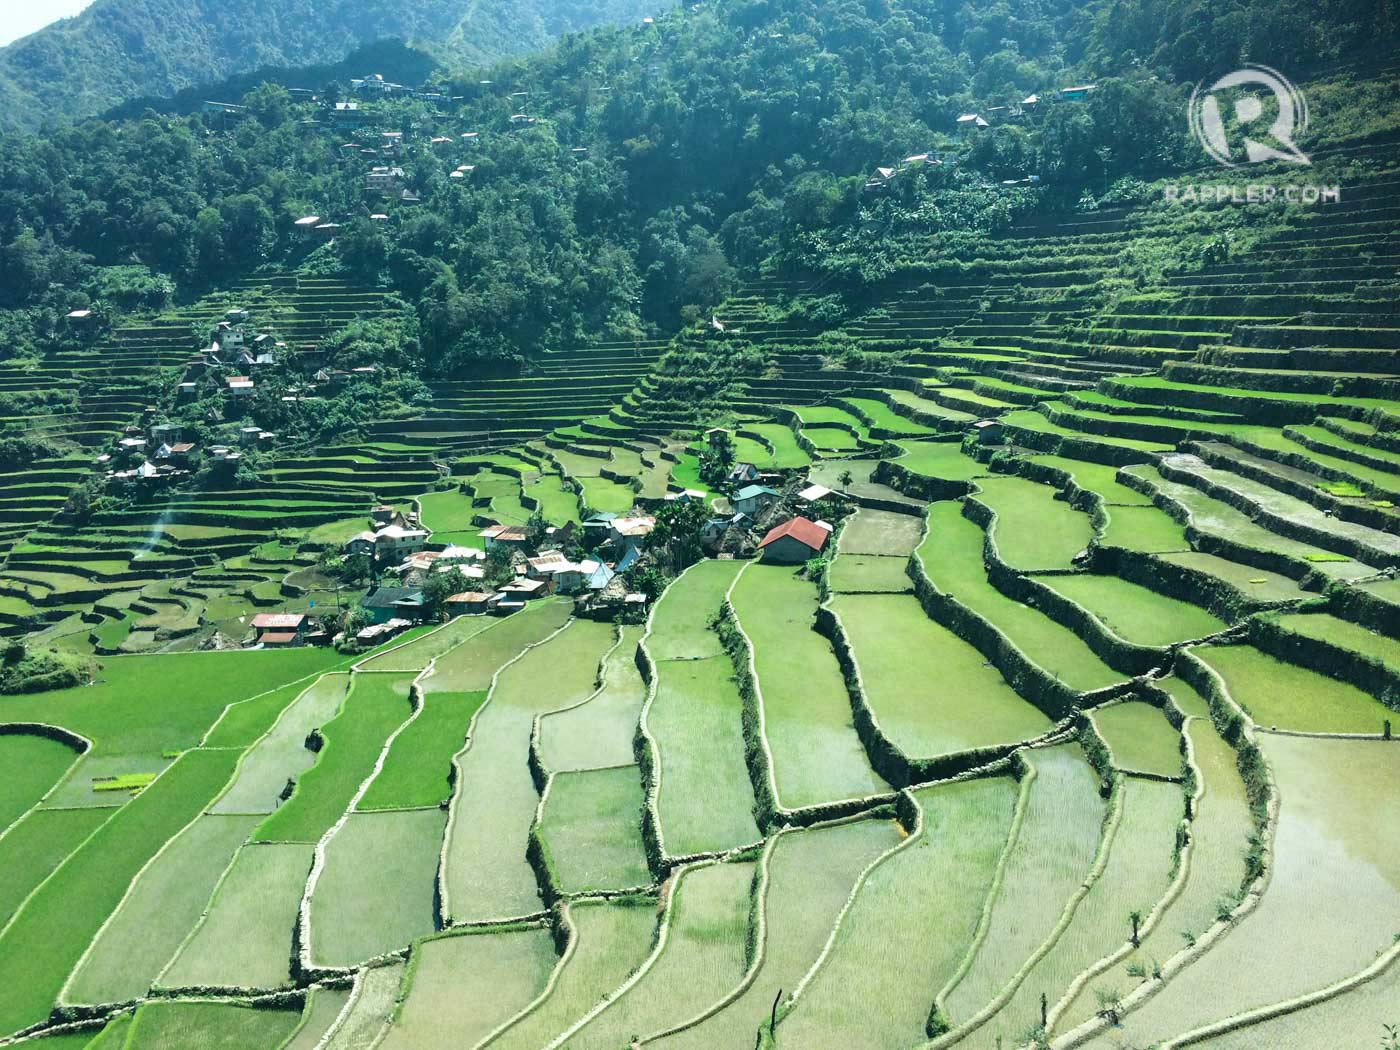 BATAD. There are currently 1,600 hectares of cultivated rice terraces in the municipality of Banaue, the most popular of which are the Batad rice terraces. Photo by Lian Buan/Rappler